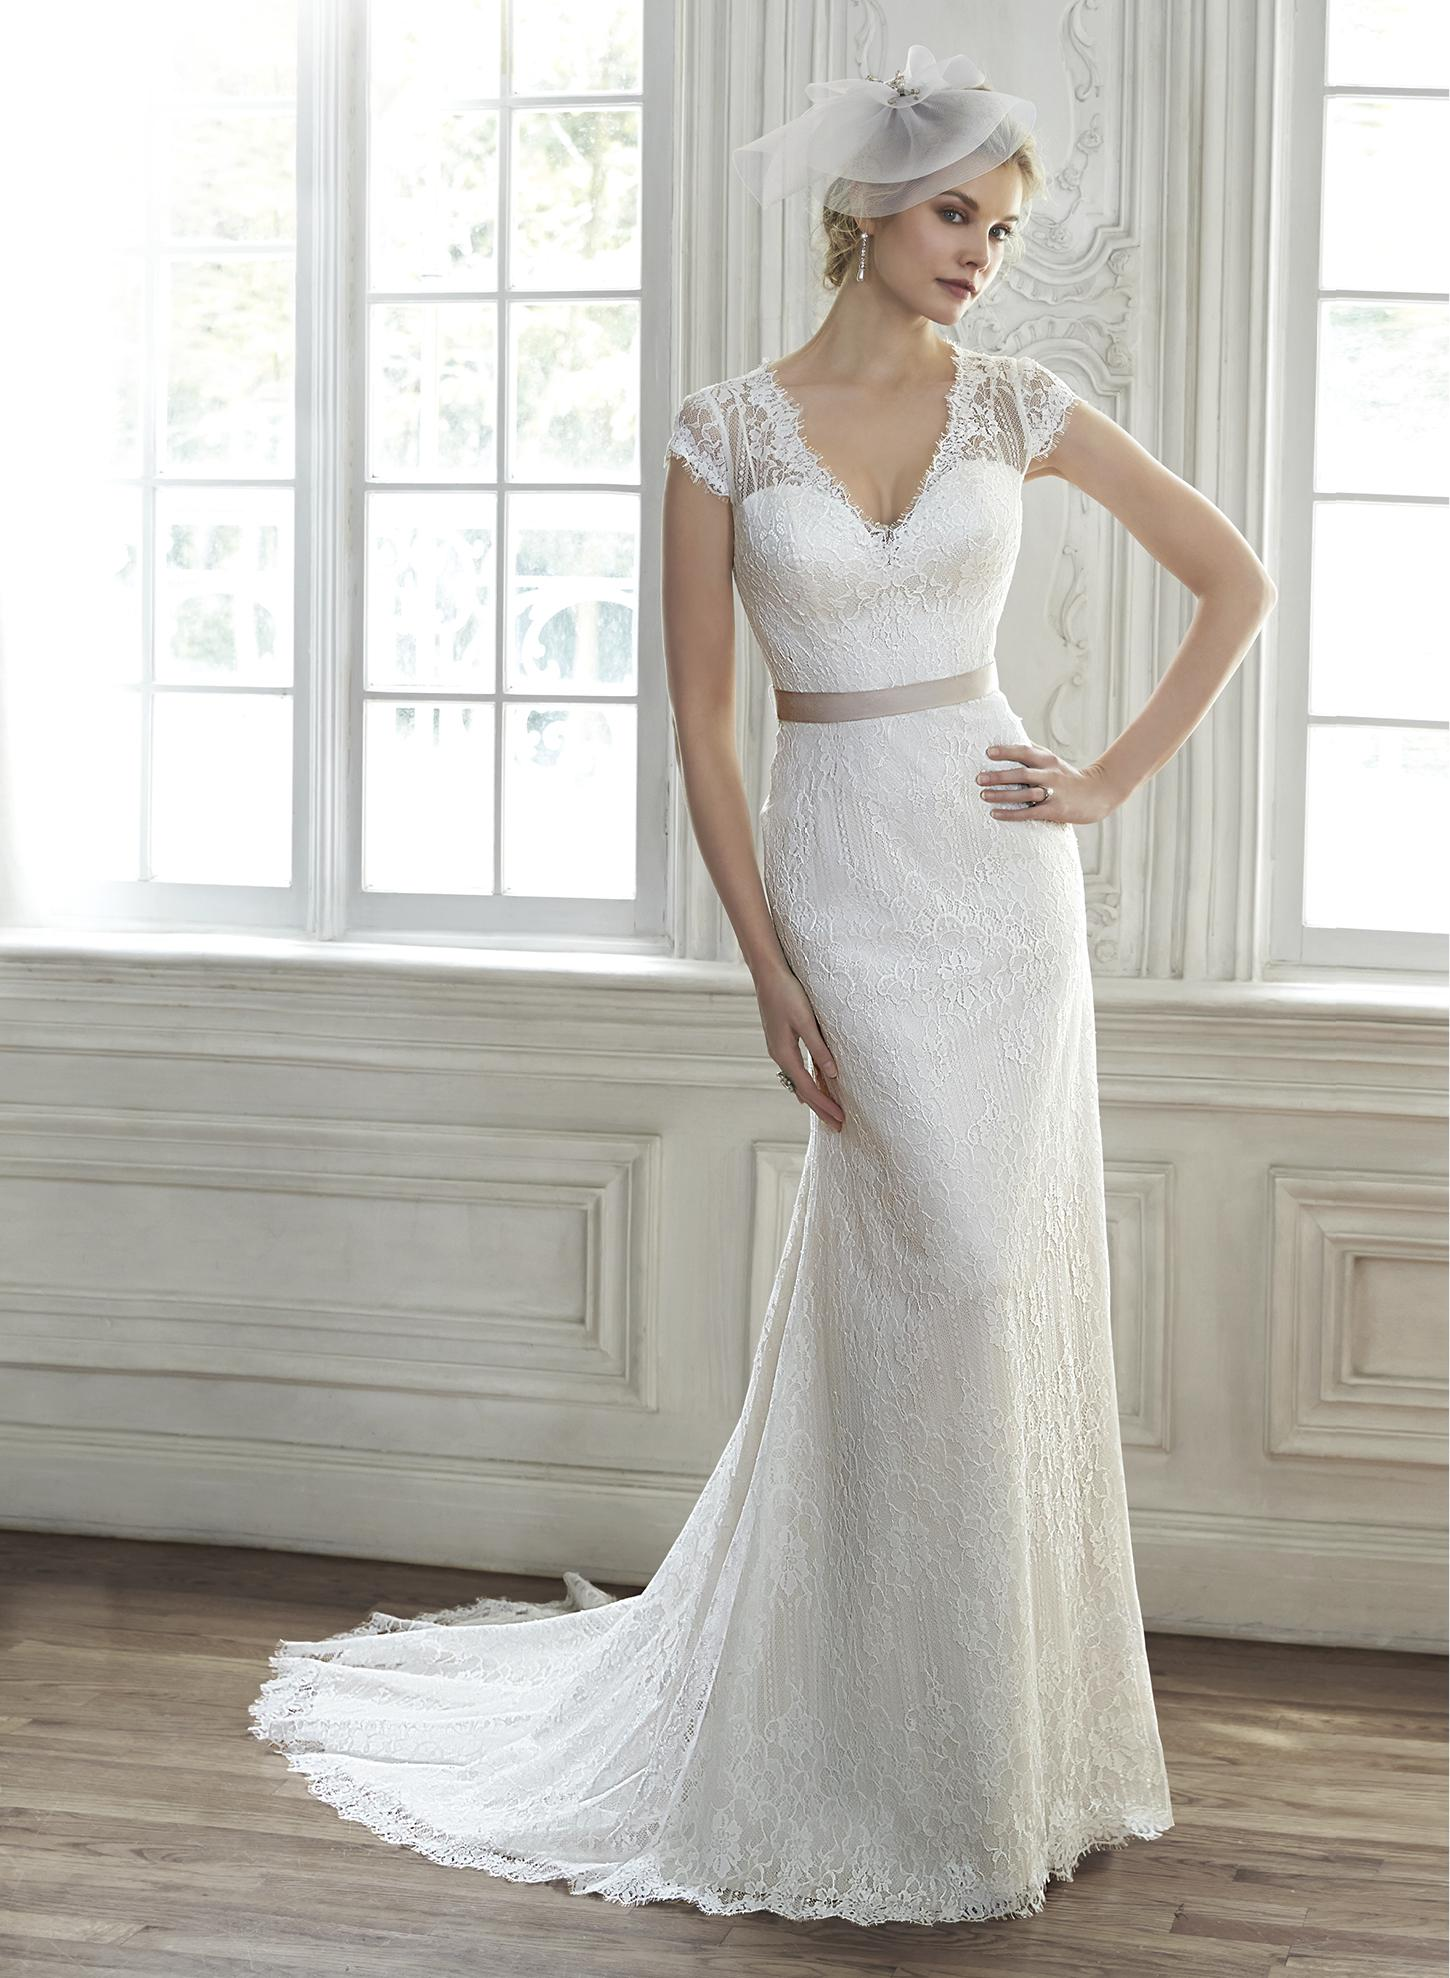 Exquisite v Neck Cap Sleeved Sheath All over Lace Patterns